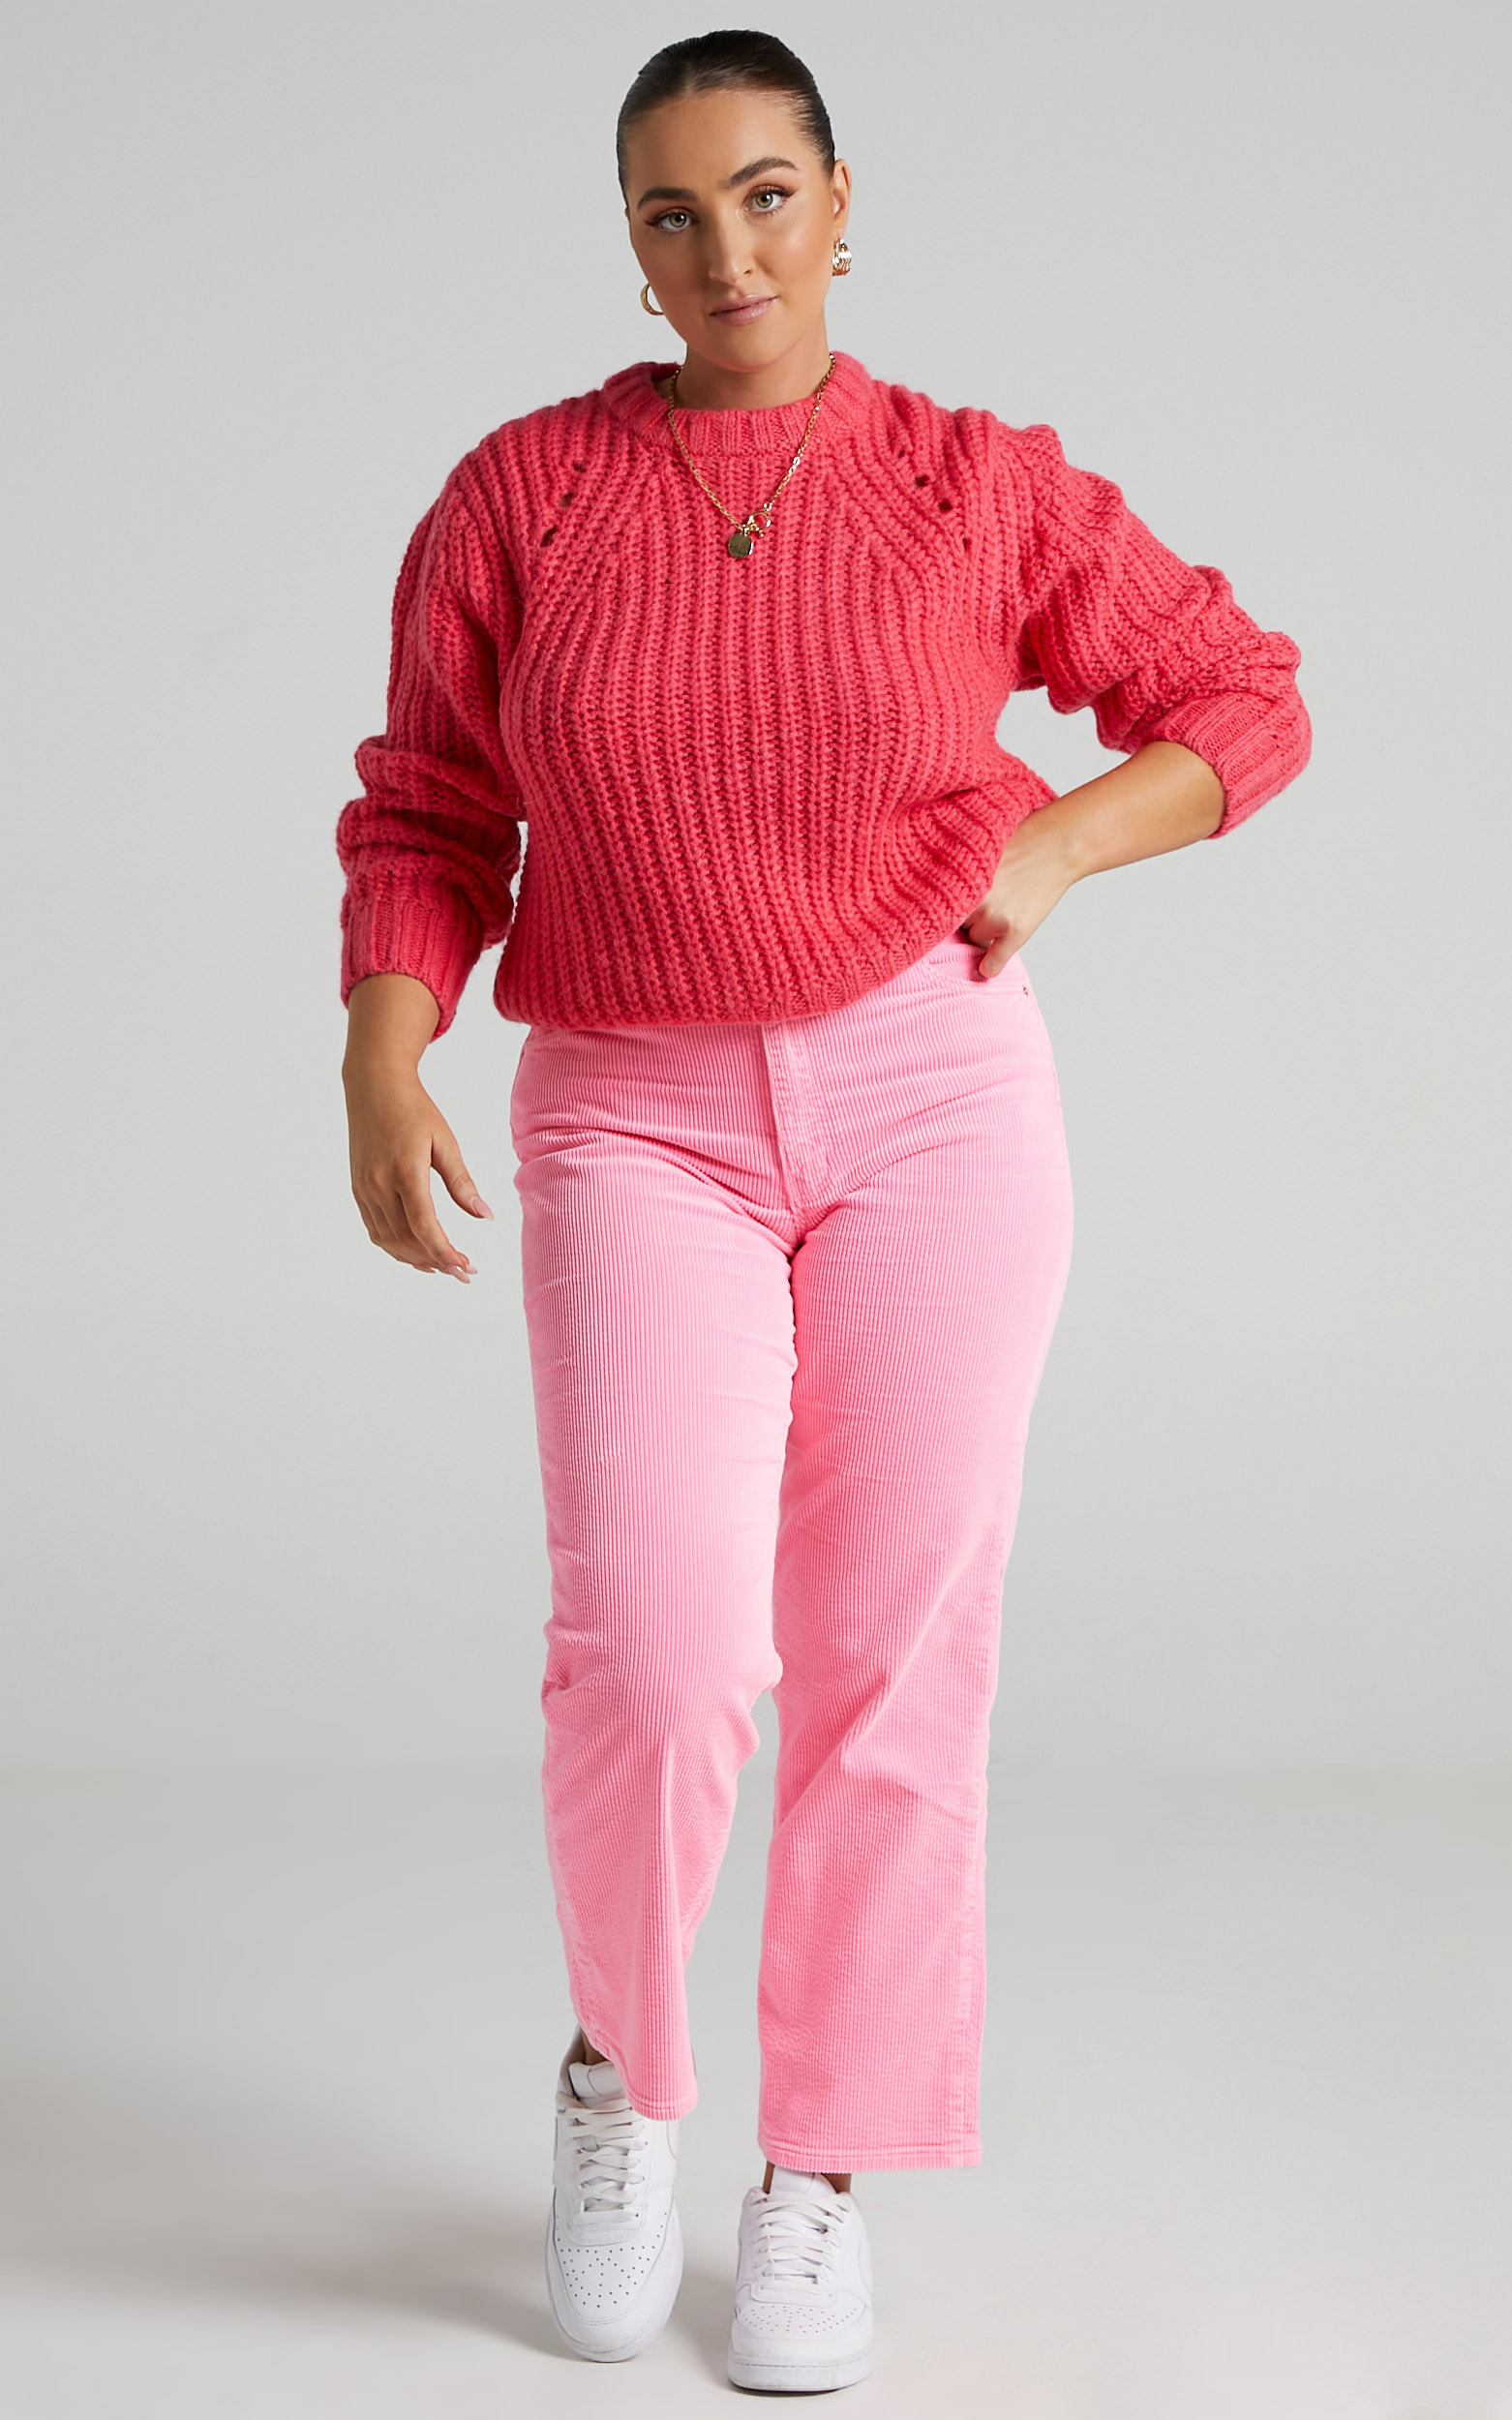 Rollas - Captain Sweater in Pink Cordial - 06, PNK1, hi-res image number null